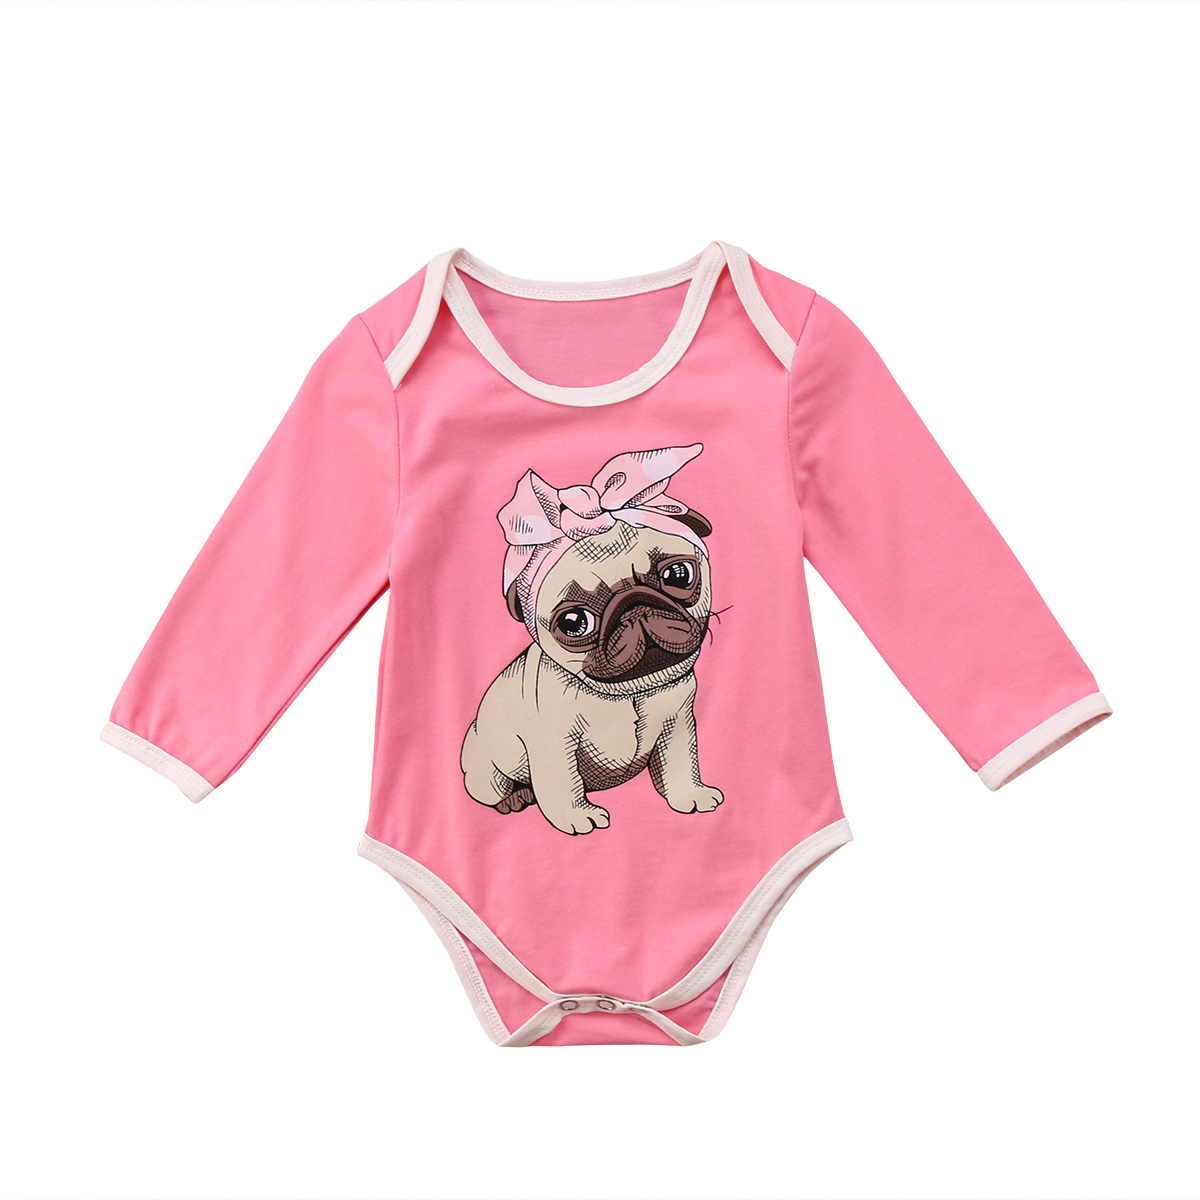 af1c0b3e0 Detail Feedback Questions about Newborn Baby Girls Romper Long ...